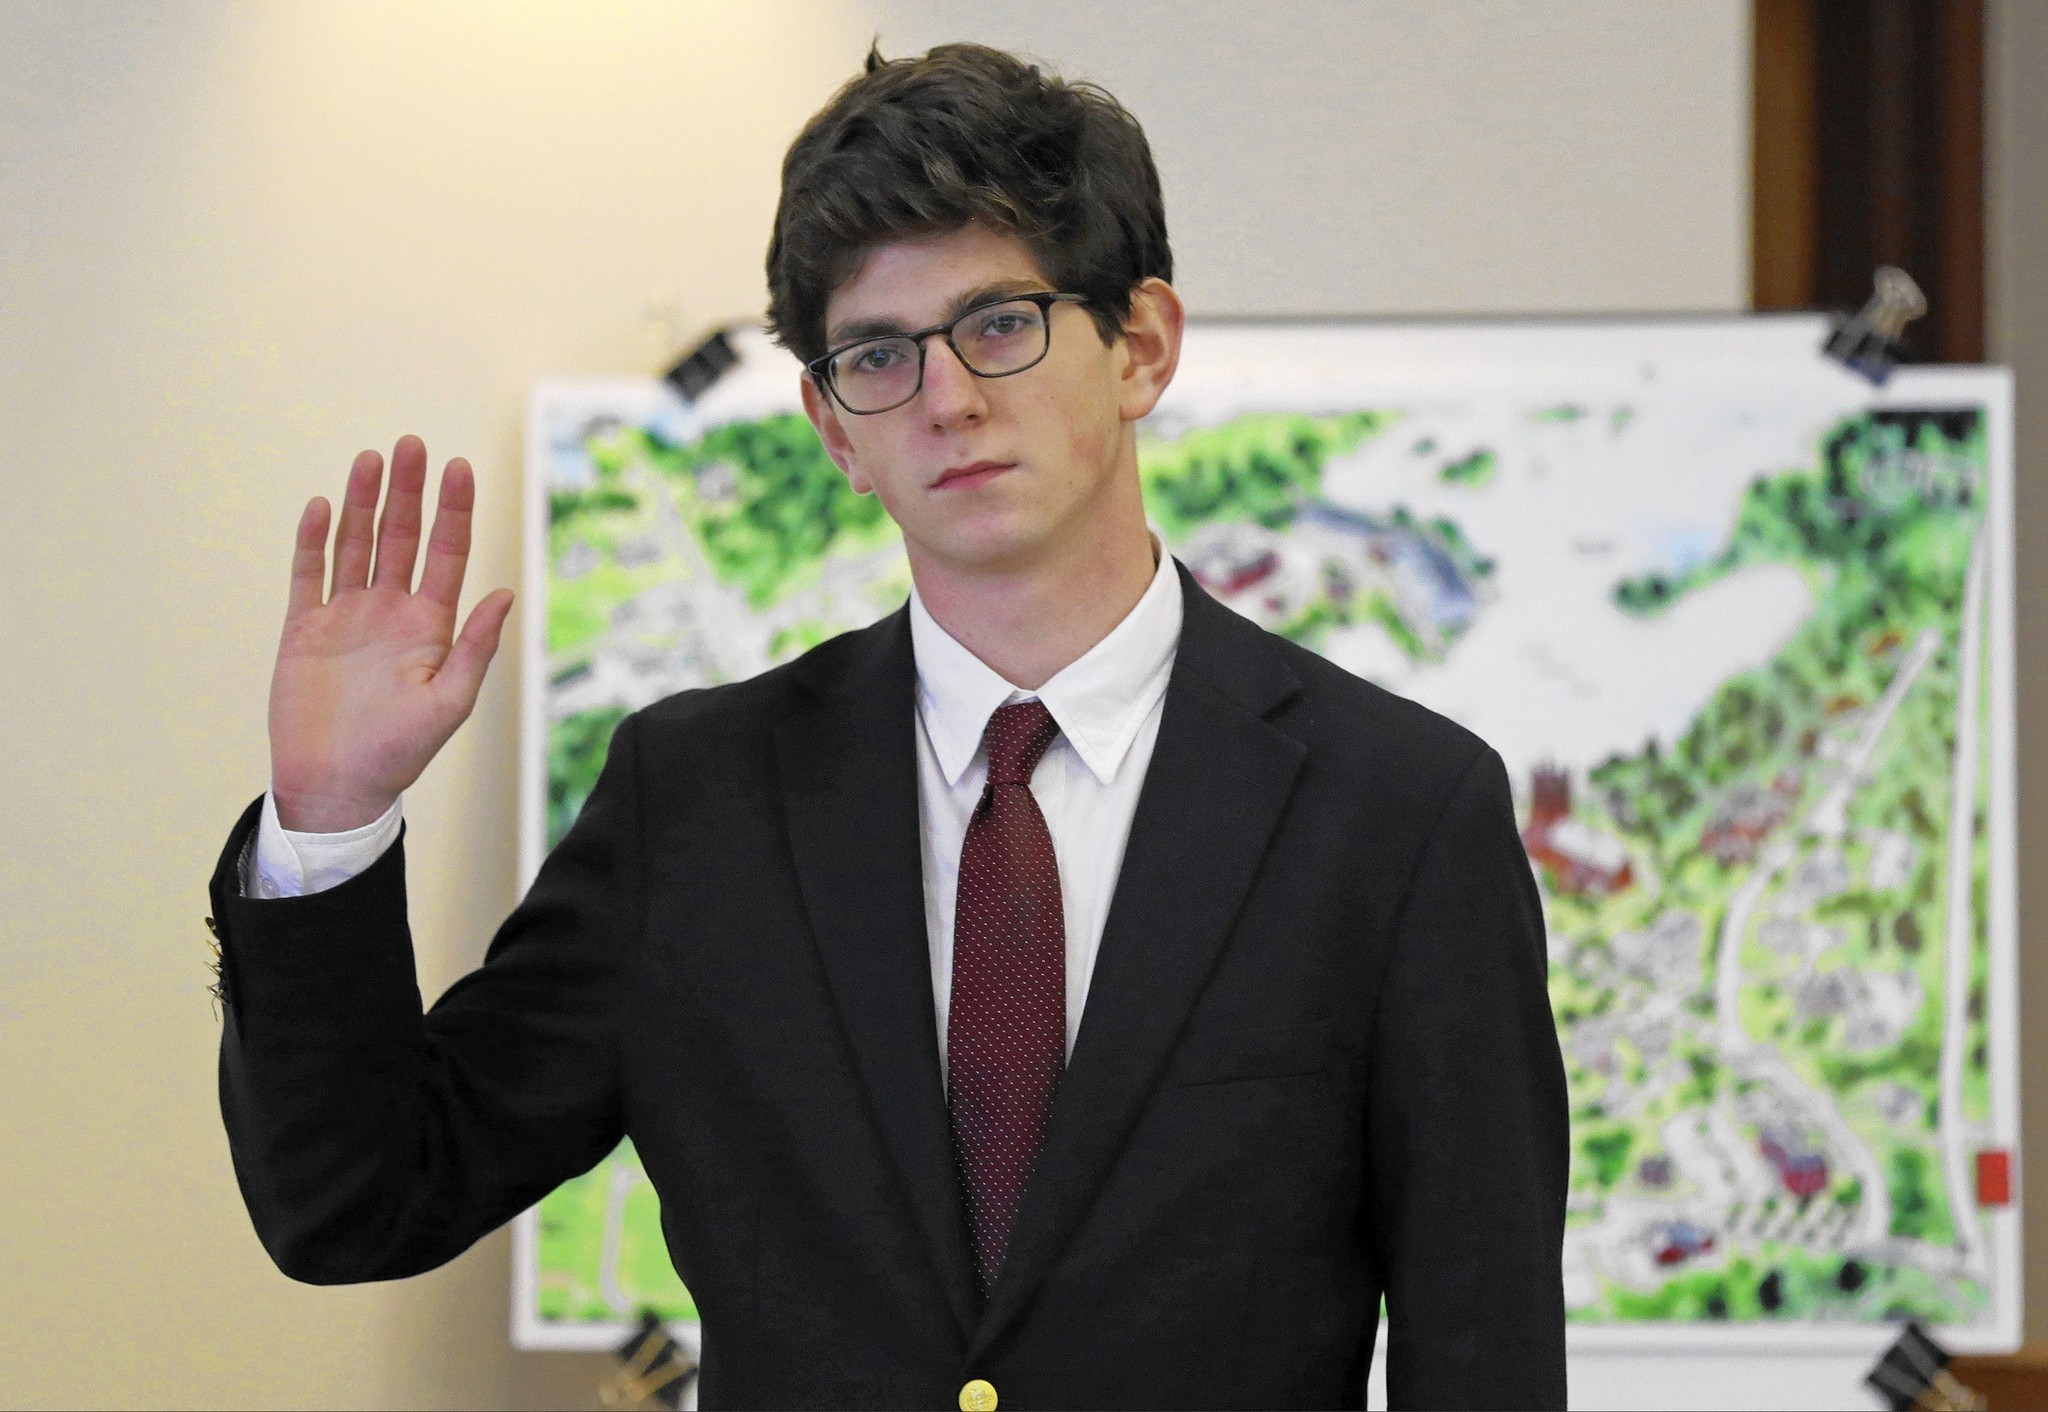 nh sex  N.H. prep school graduate gets a year in jail for sexual assault - Chicago  Tribune